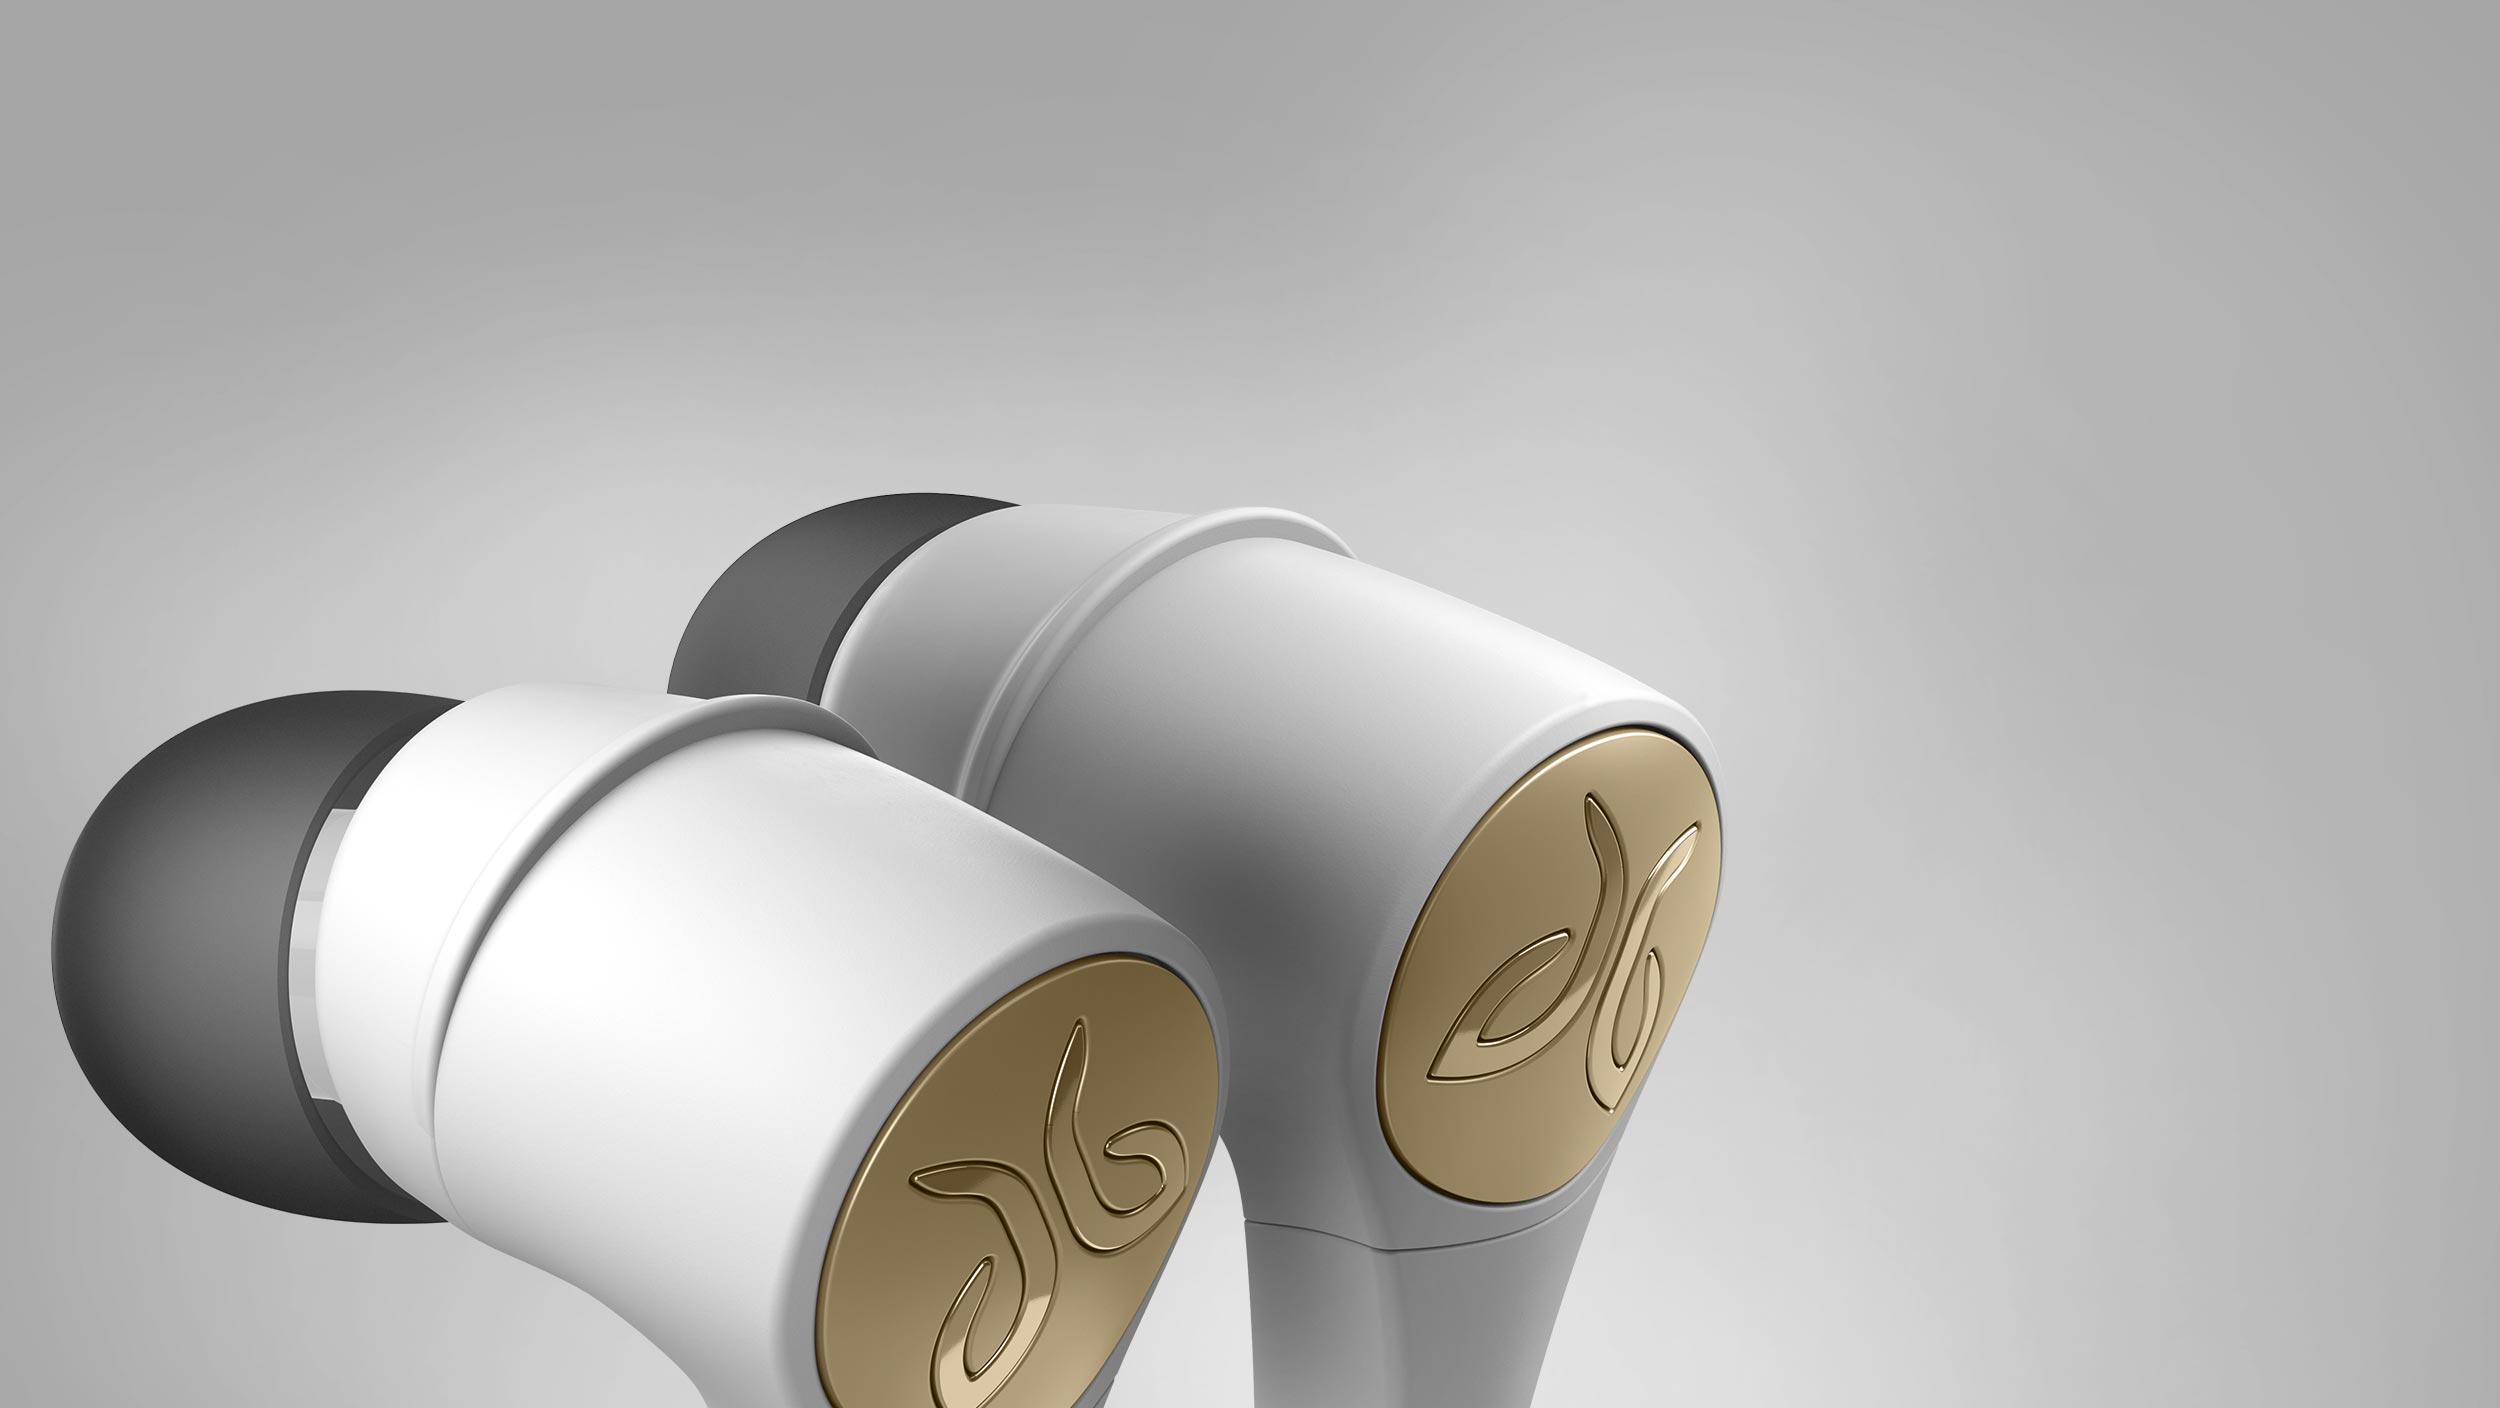 Jaybird X3 Bluetooth Earbuds Spartan Background